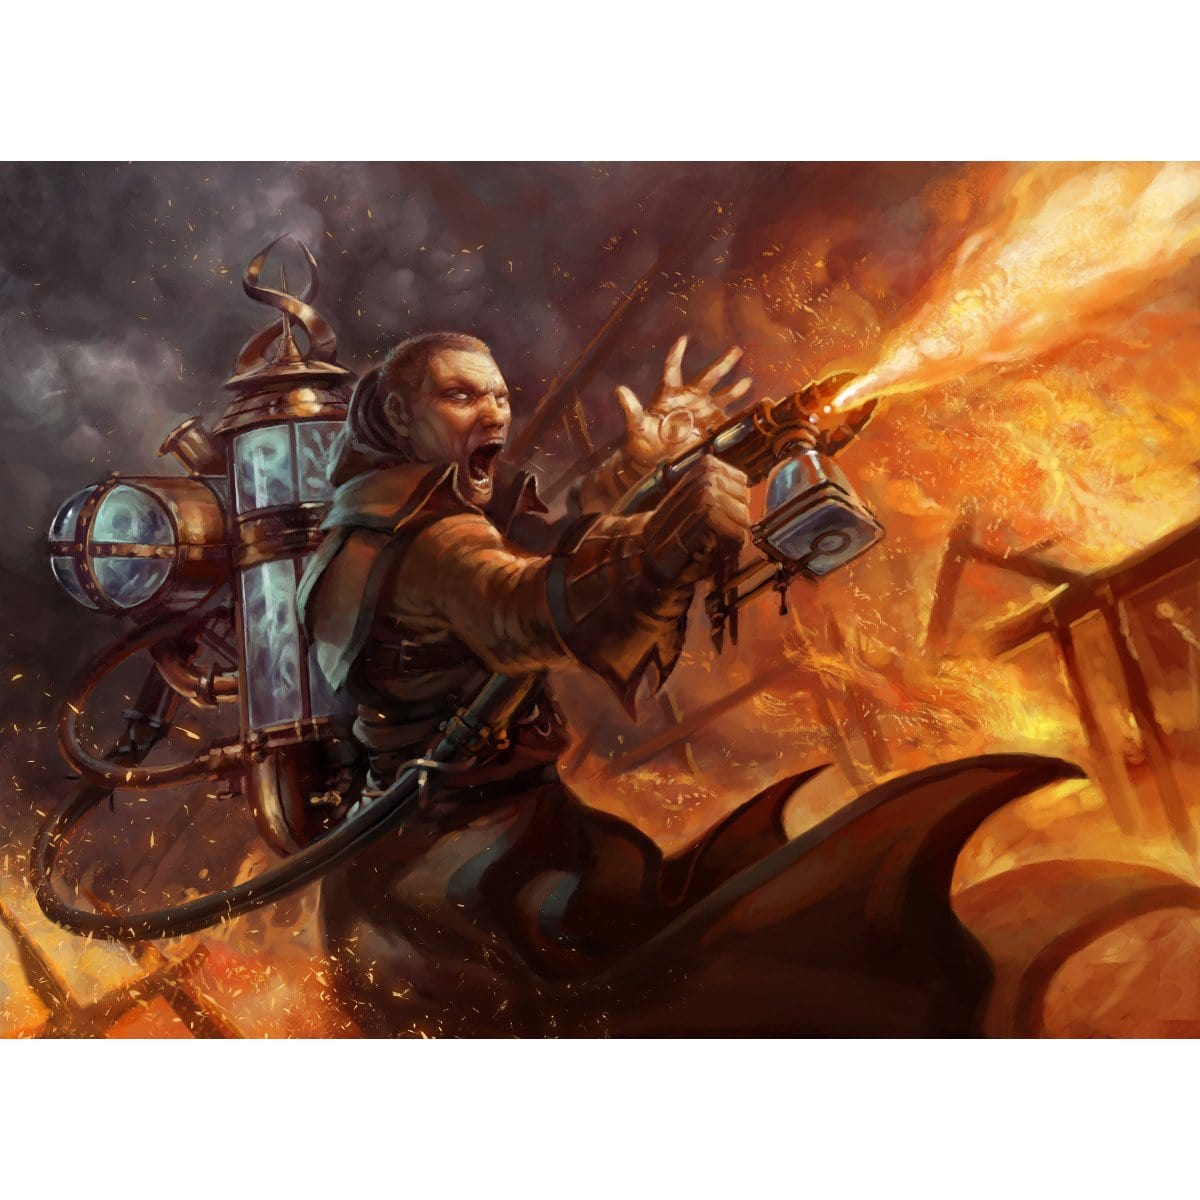 Rage Thrower Print - Print - Original Magic Art - Accessories for Magic the Gathering and other card games